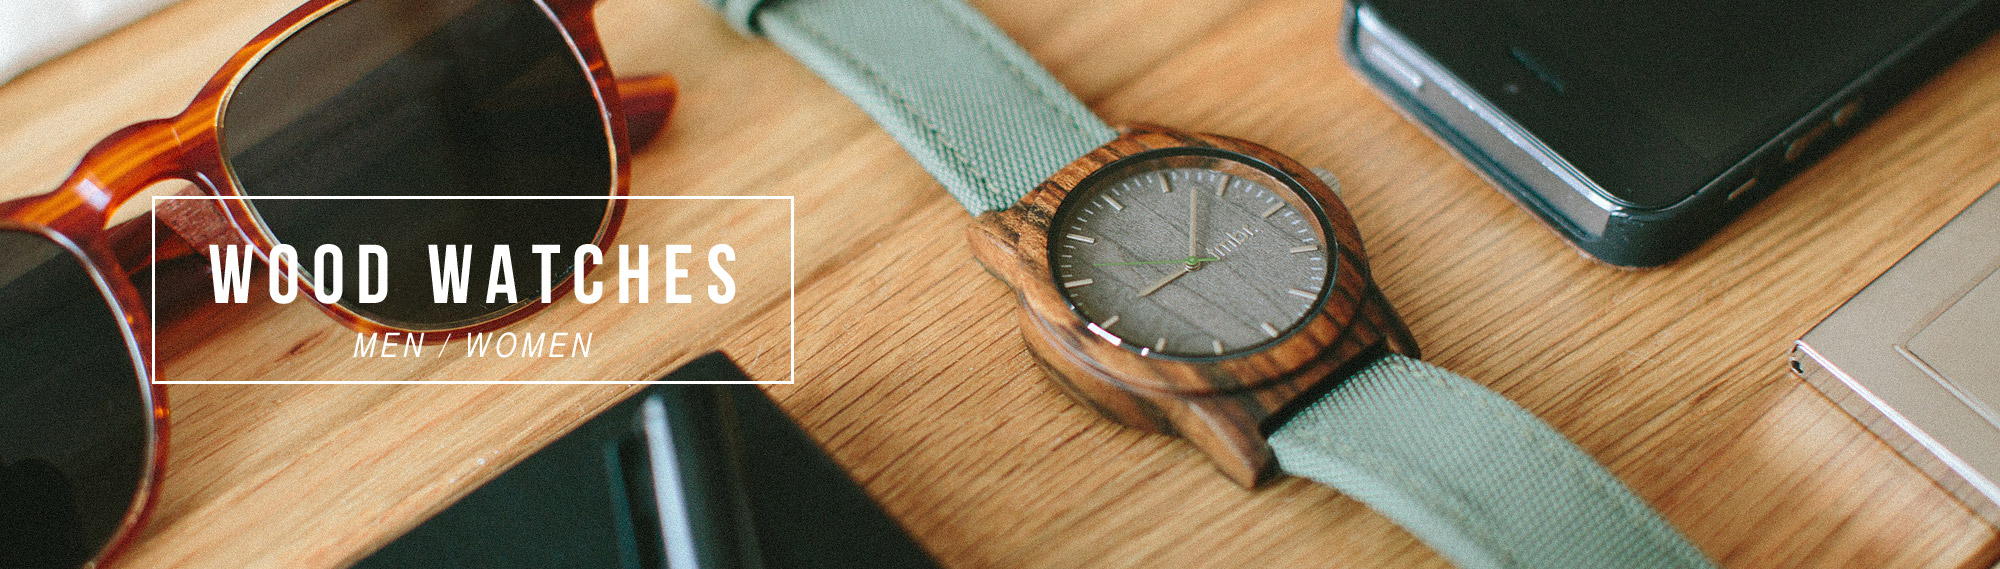 Tmbr. 2015 Wood Watches